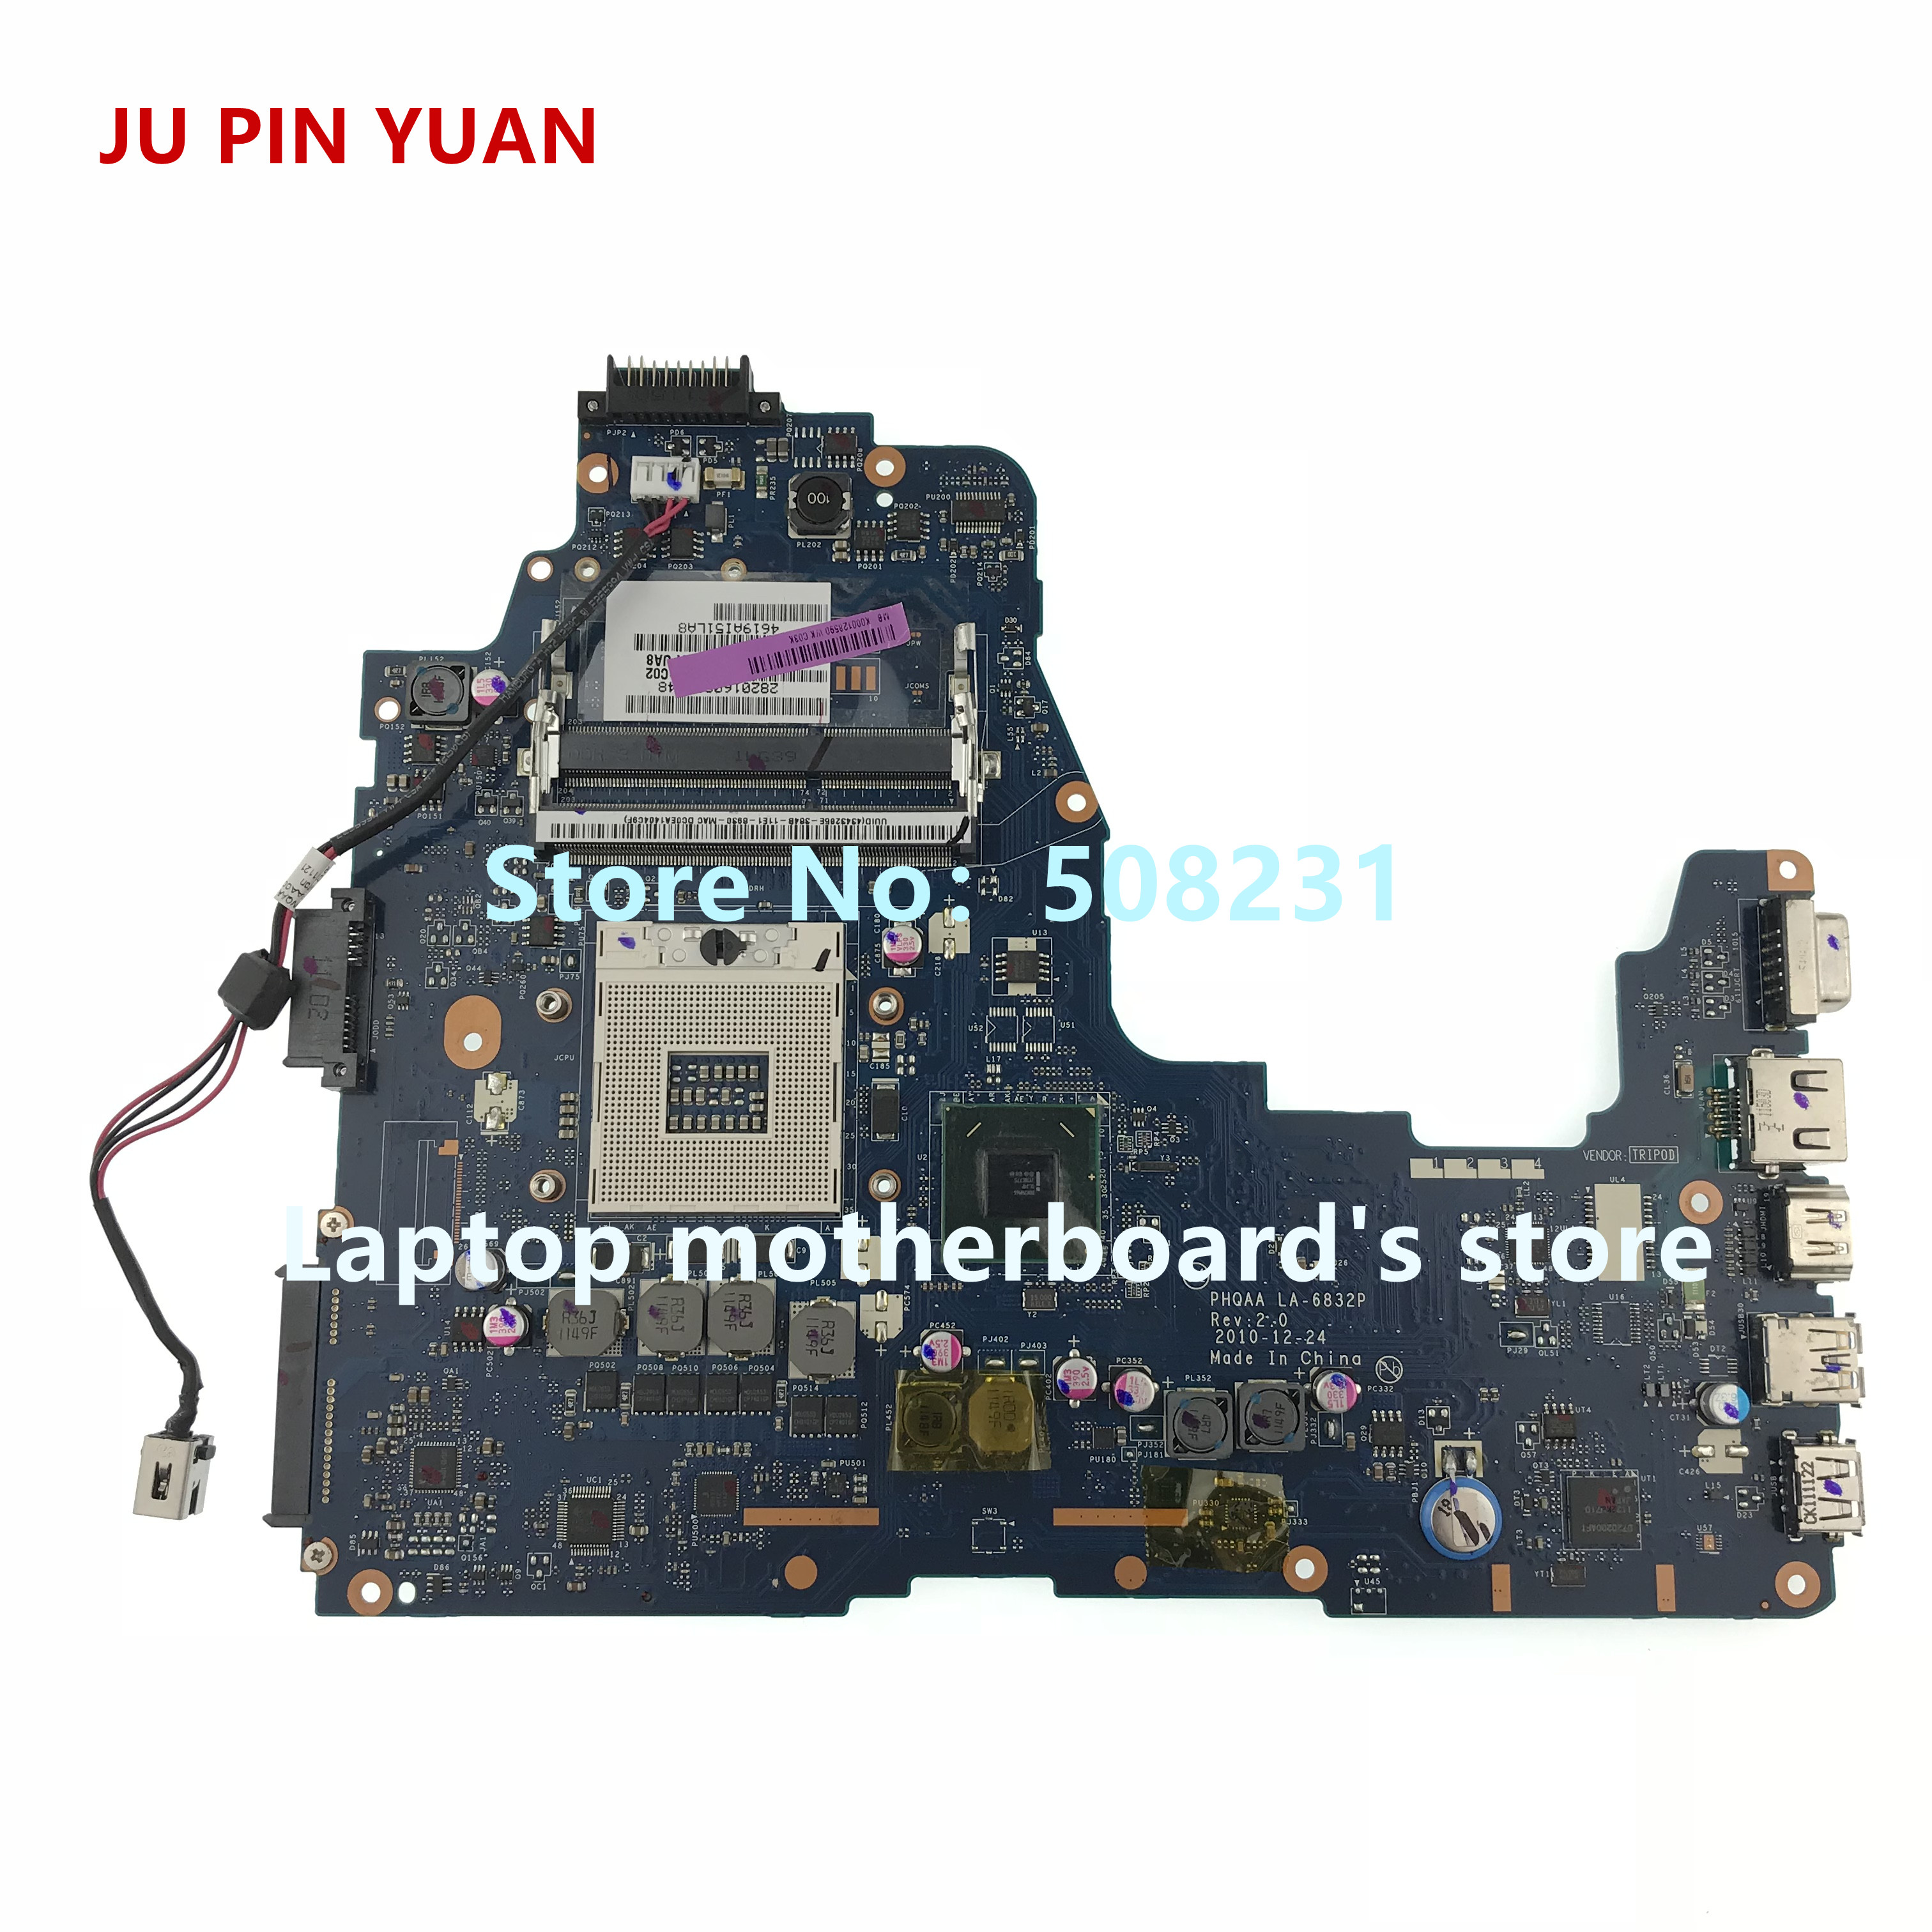 JU PIN YUAN K000128590 LA-6832P Mainrboard For <font><b>Toshiba</b></font> <font><b>satellite</b></font> <font><b>P750</b></font> P755 A665 A660 laptop motherboard fully Tested image